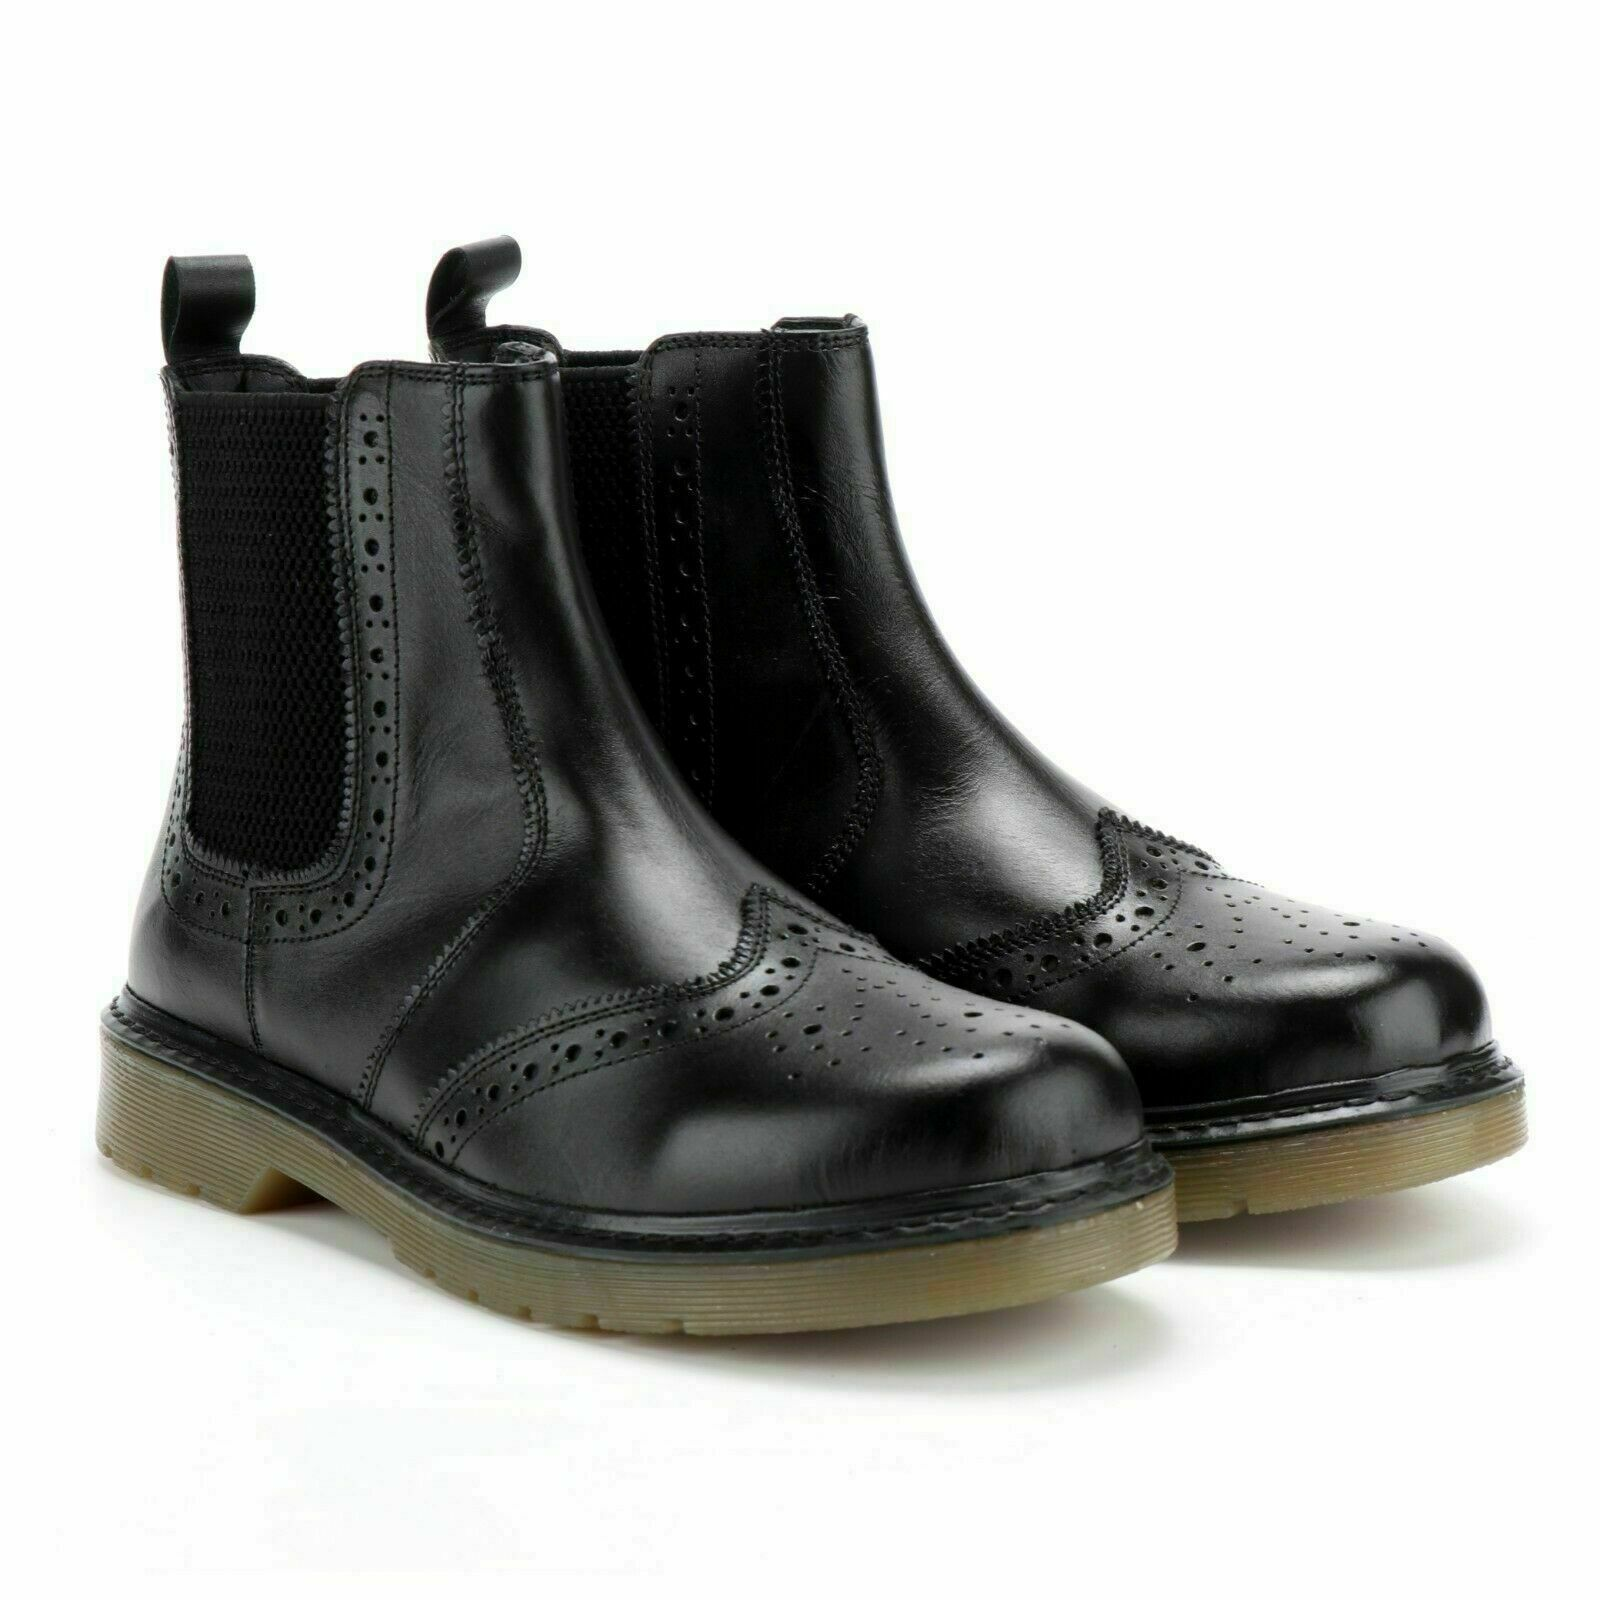 Mens Leather Chelsea Dealer Leather Boots Gum Rubber Sole Ankle Brogue Driving